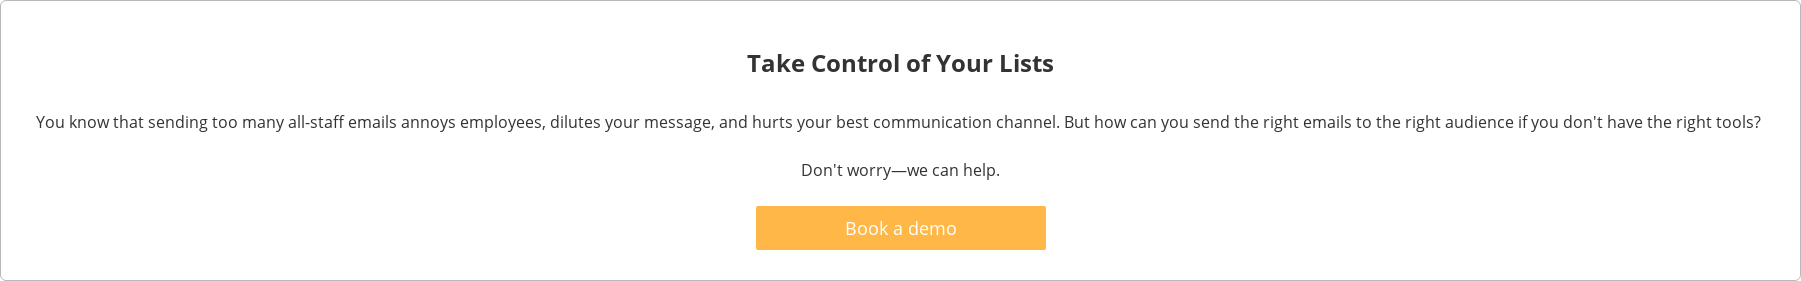 Take Control of Your Lists  You know that sending too many all-staff emails annoys employees, dilutes your  message, and hurts your best communication channel. But how can you send the  right emails to the right audience if you don't have the right tools?  Don't worry—we can help.   Book a demo